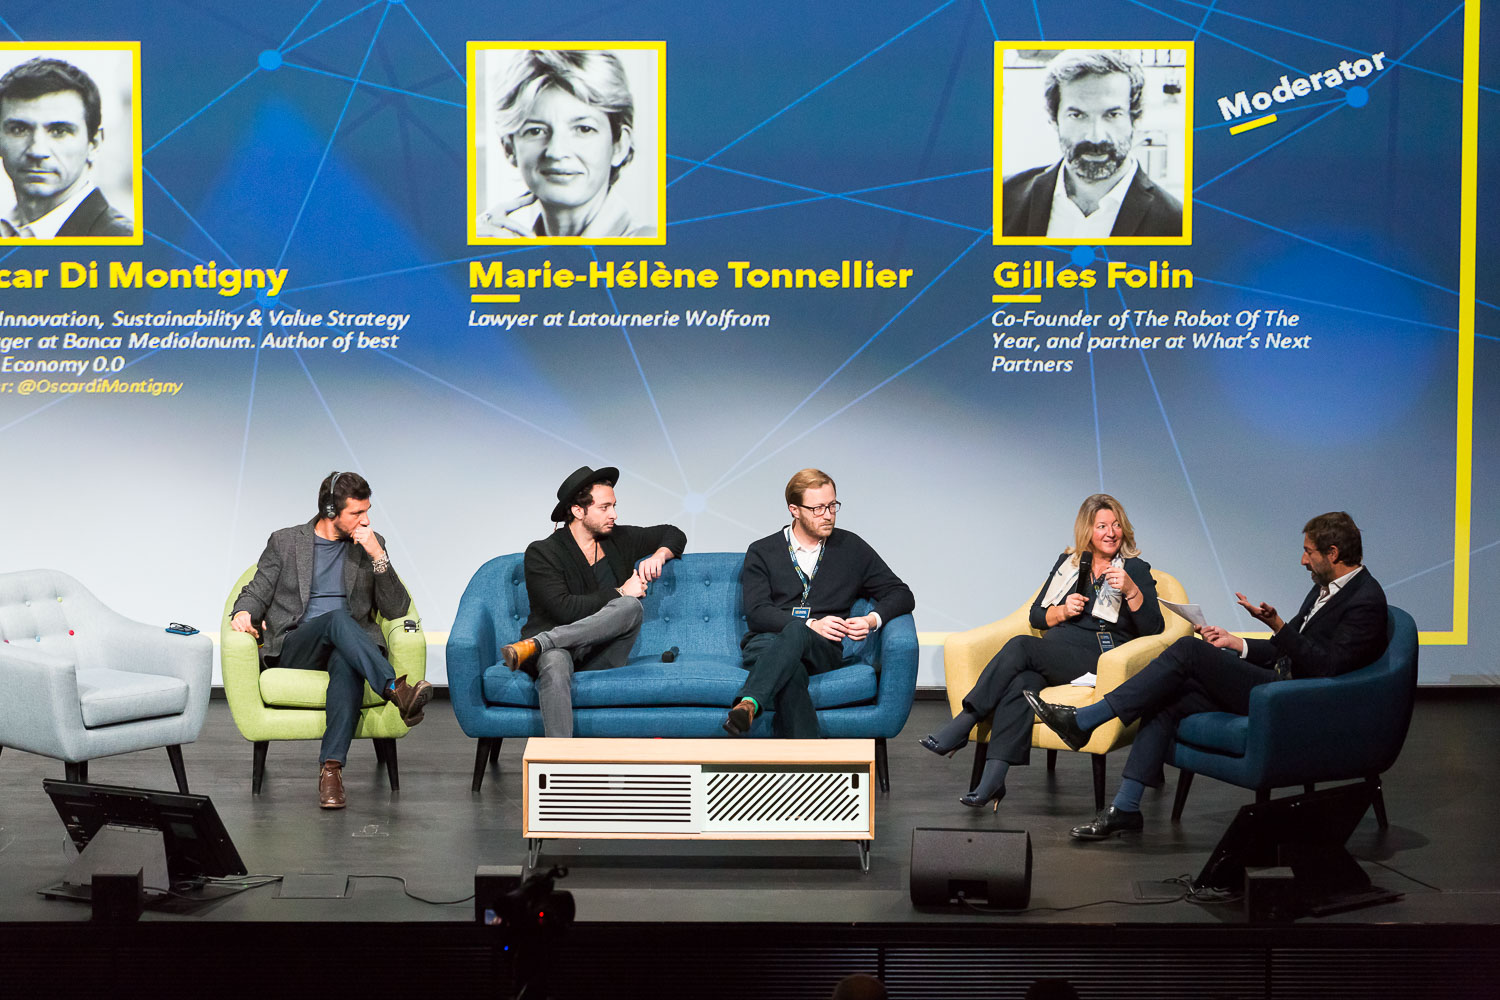 Founding a better future with AI and robots.  Oscar Di Montigny – Chief Innovation, Sustainability & Value Strategy Manager at Banca Mediolanum . Author of best seller Economy 0.0, Rand Hindi - Data scientist and CEO of Snips, Pierre Lebeau - Founder at Keecker, Marie-Hélène Tonnellier - Lawyer at Latournerie WolfromP - Moderator : Gilles Folin – Co-Founder of The Robot Of The Year, and partner at What's Next Partners.